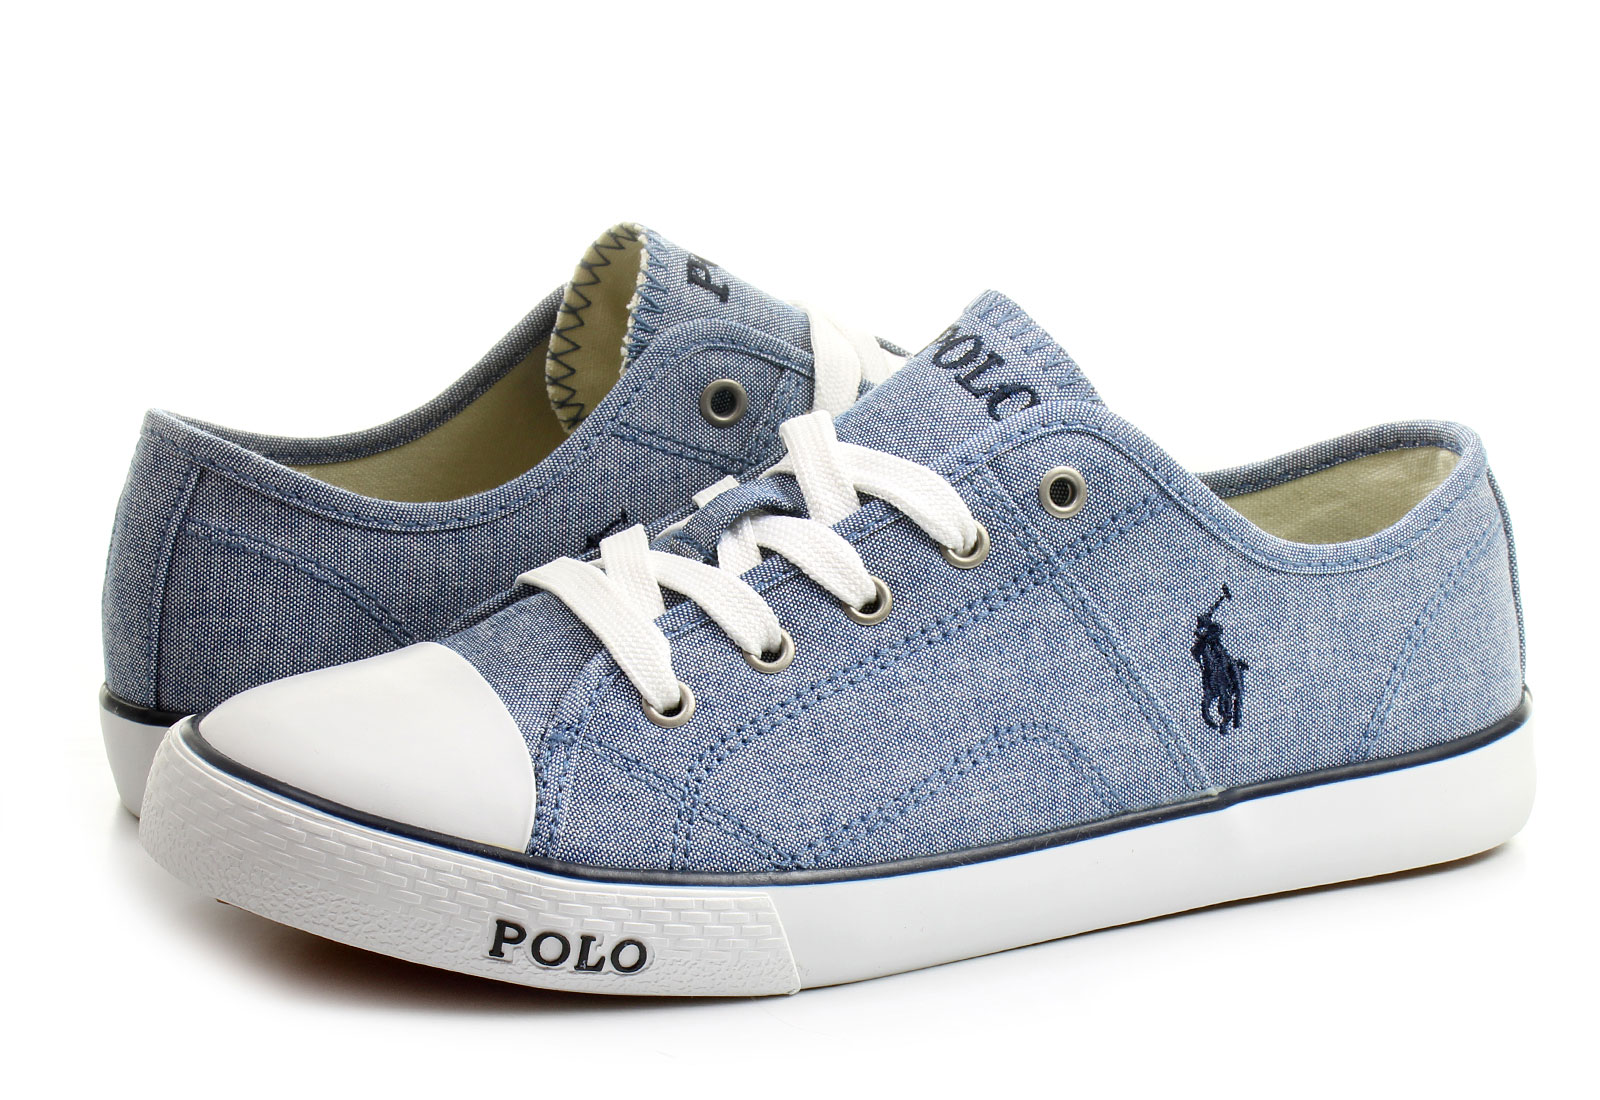 Us Polo Shoes Price